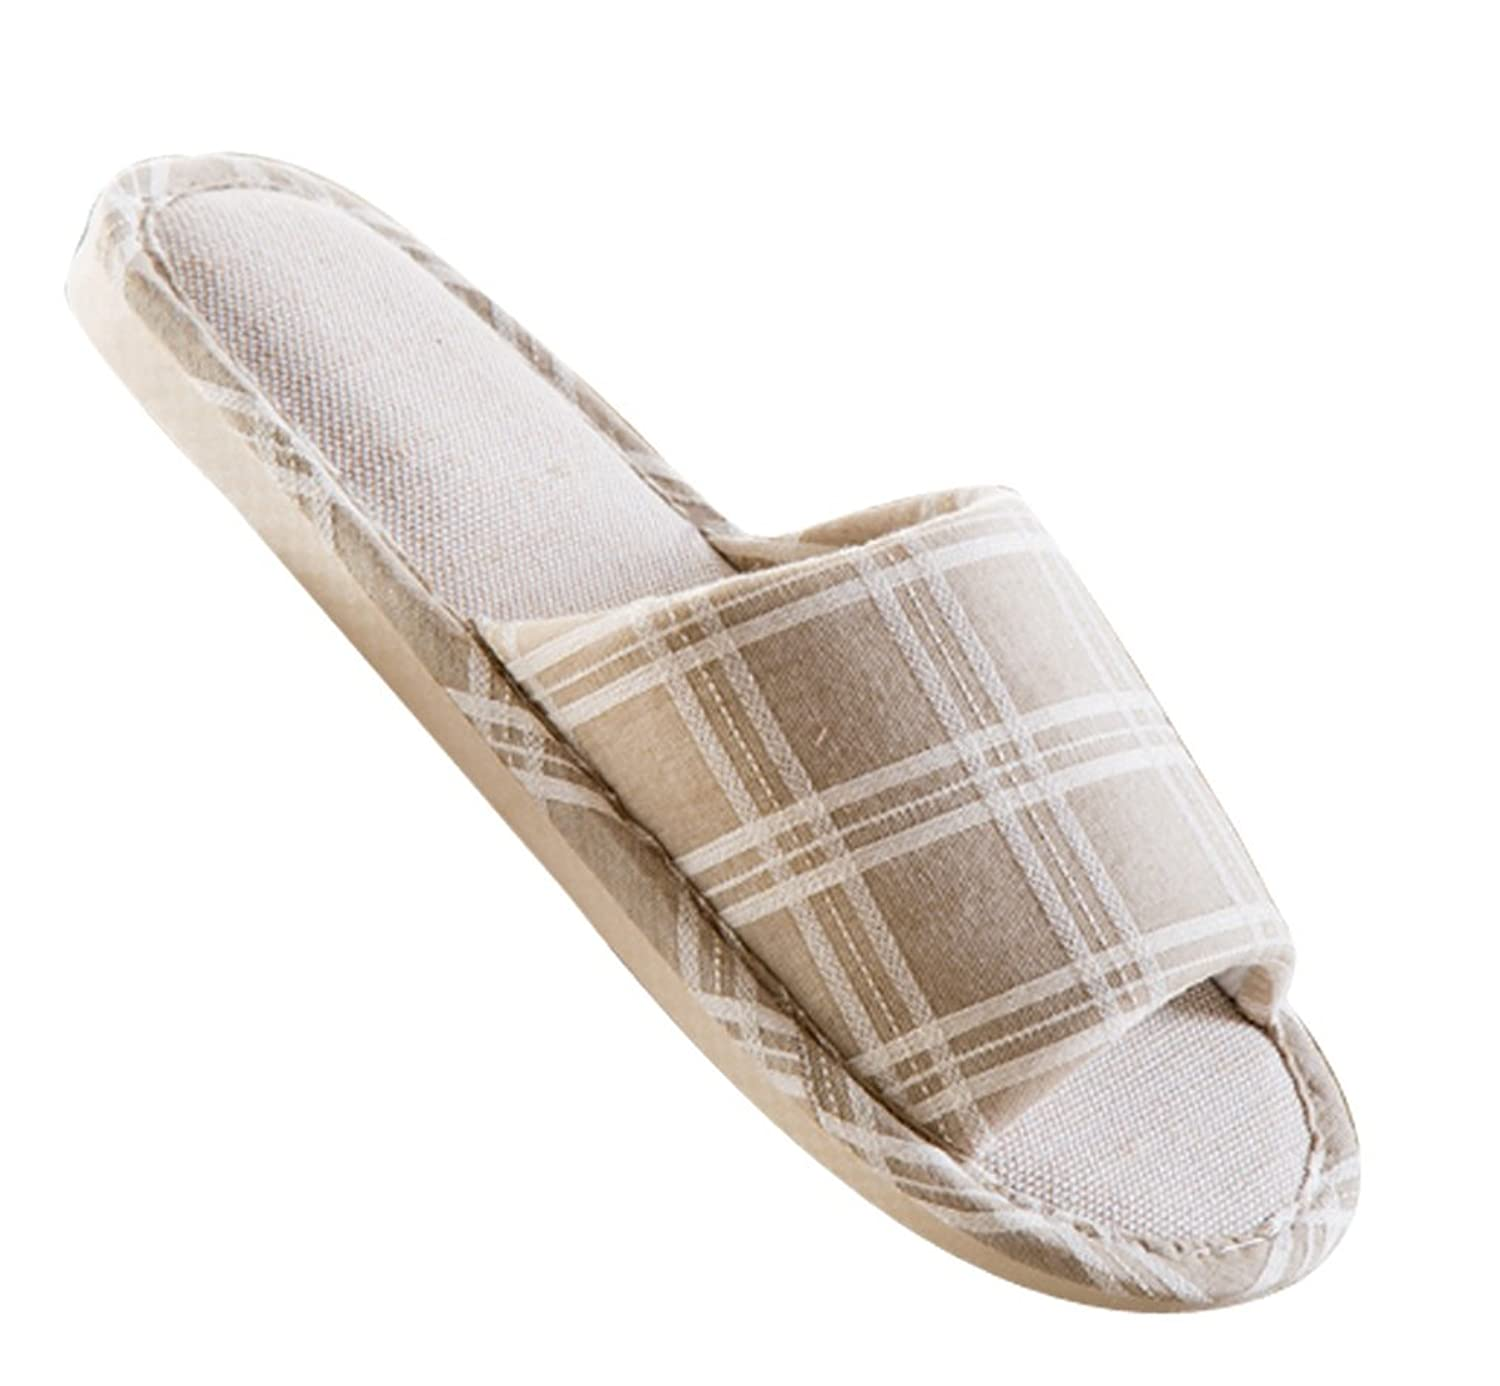 Cattior Mens Comfy Flax Open Toe Slippers House Slippers